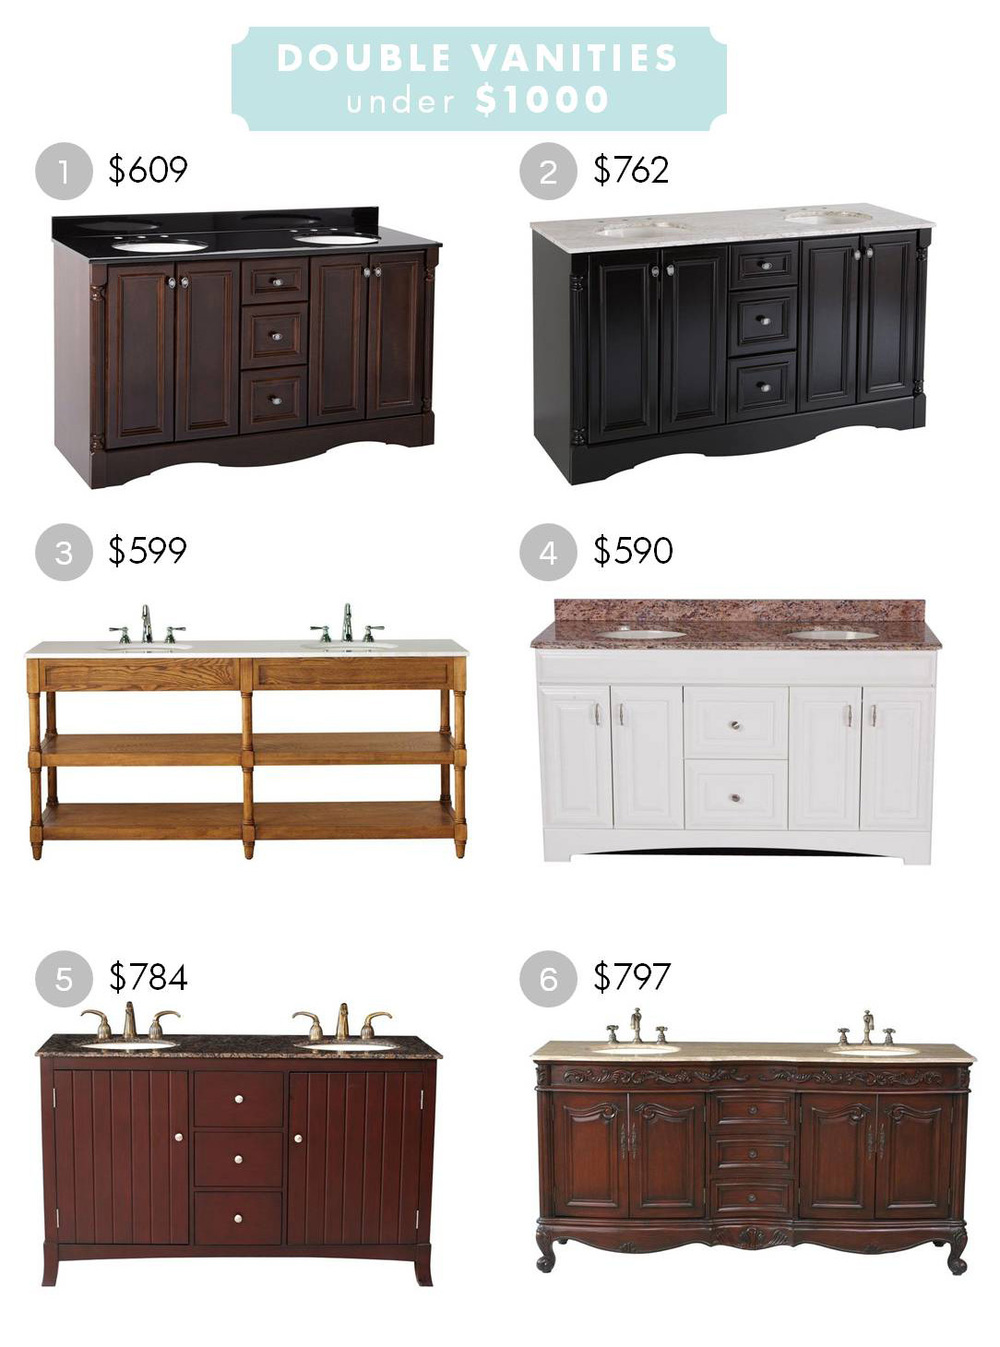 Bathroom Vanities Under $1000 double vanities under $1000 — elizabeth burns design, raleigh nc